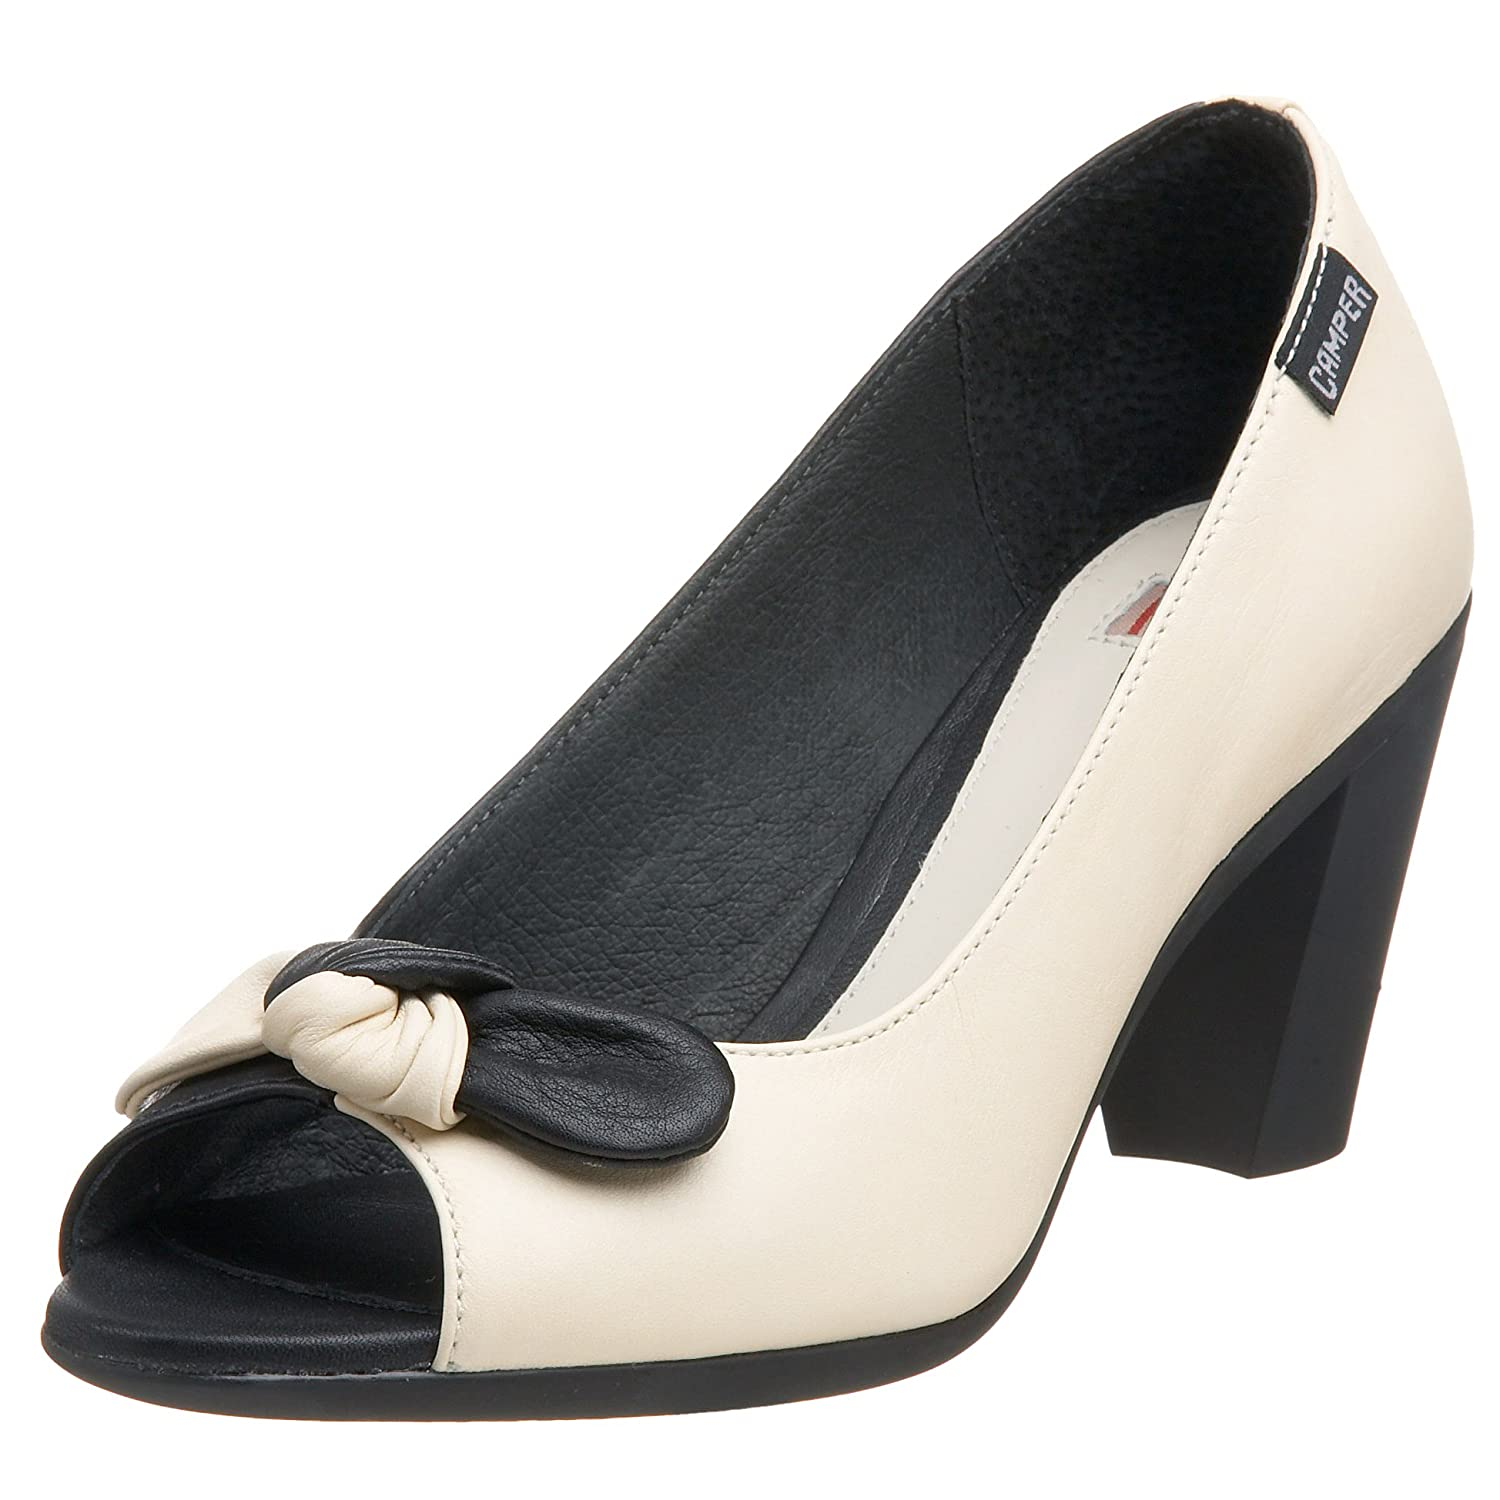 Camper Women's Twins 20981-1 - Free Overnight Shipping & Return Shipping: Endless.com :  pumps two tone retro heels